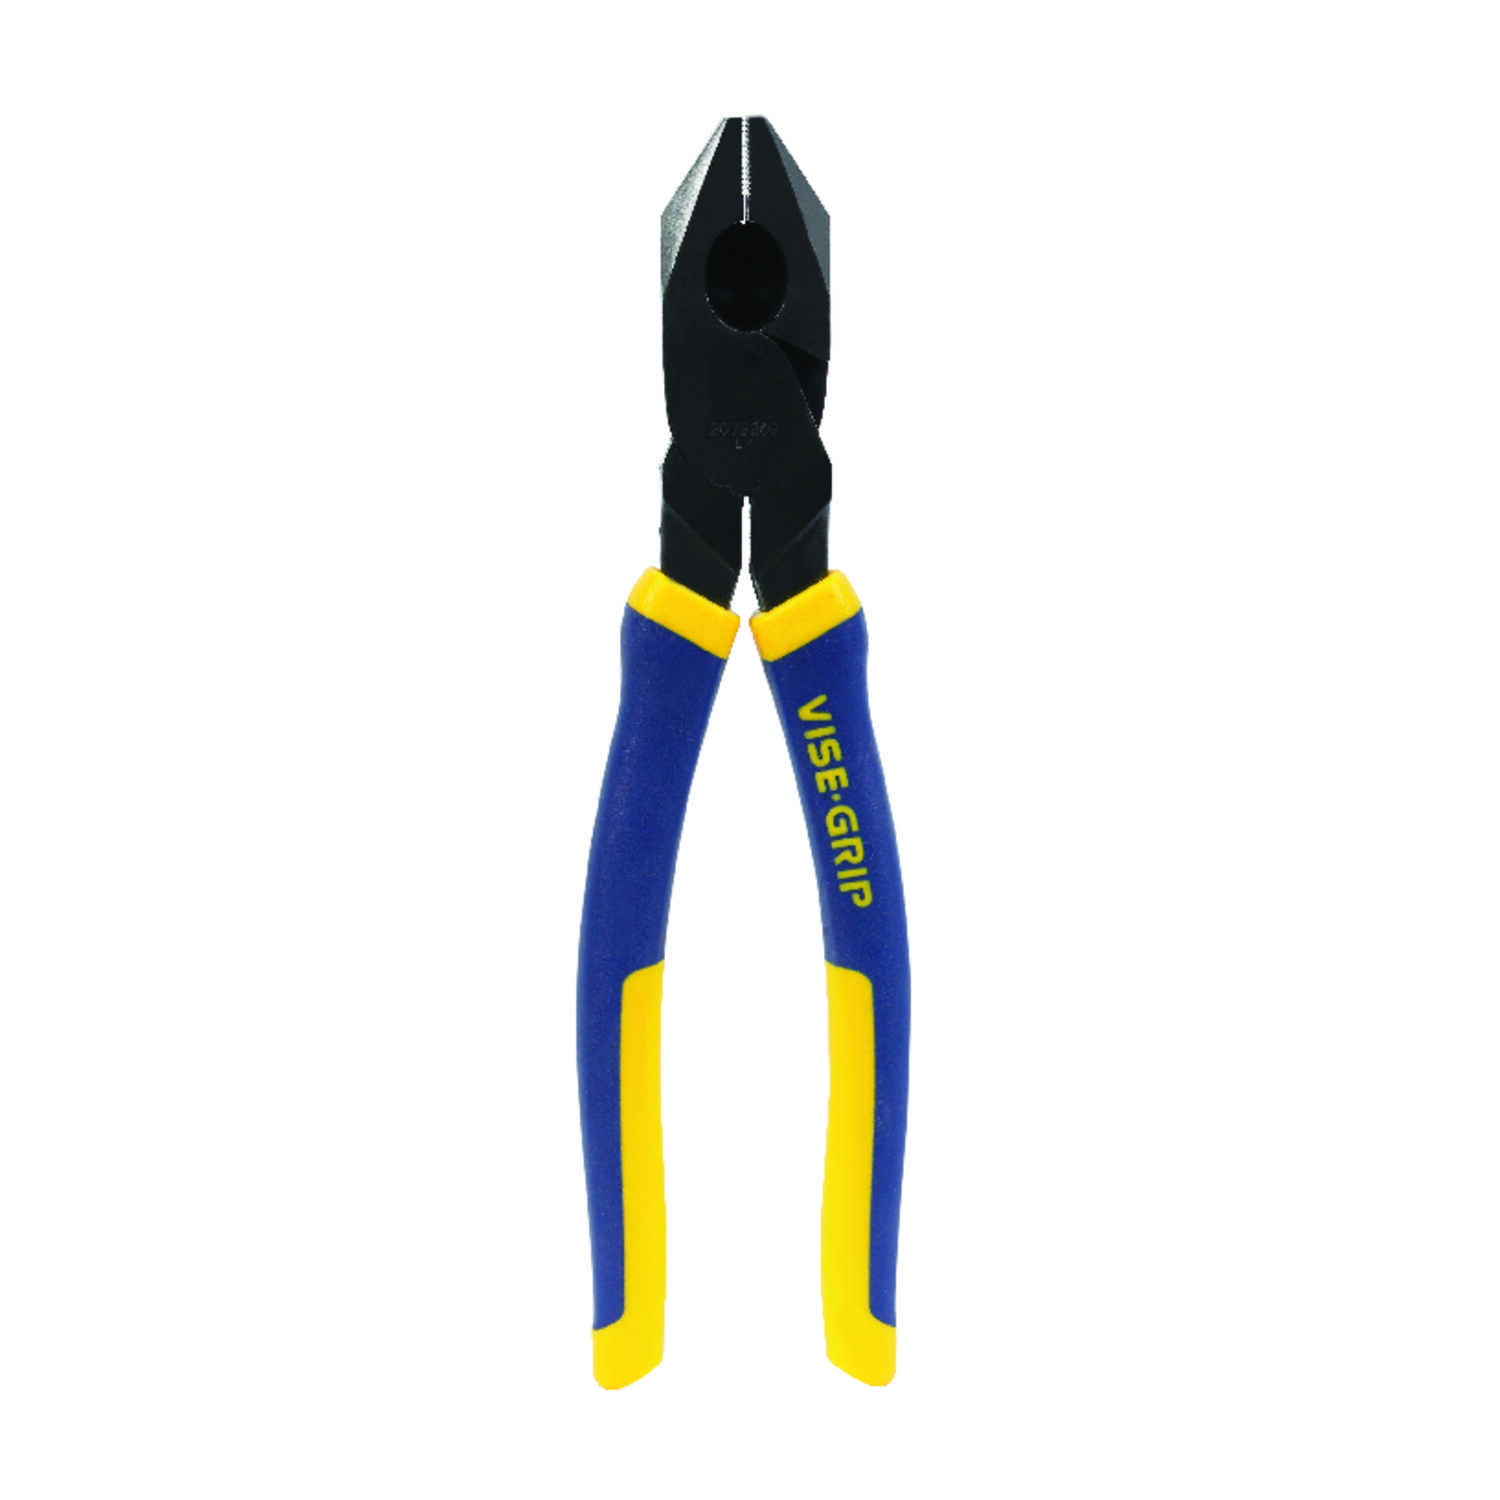 Irwin  9-1/2 in. Steel  Linesman Pliers  Blue  1 pk